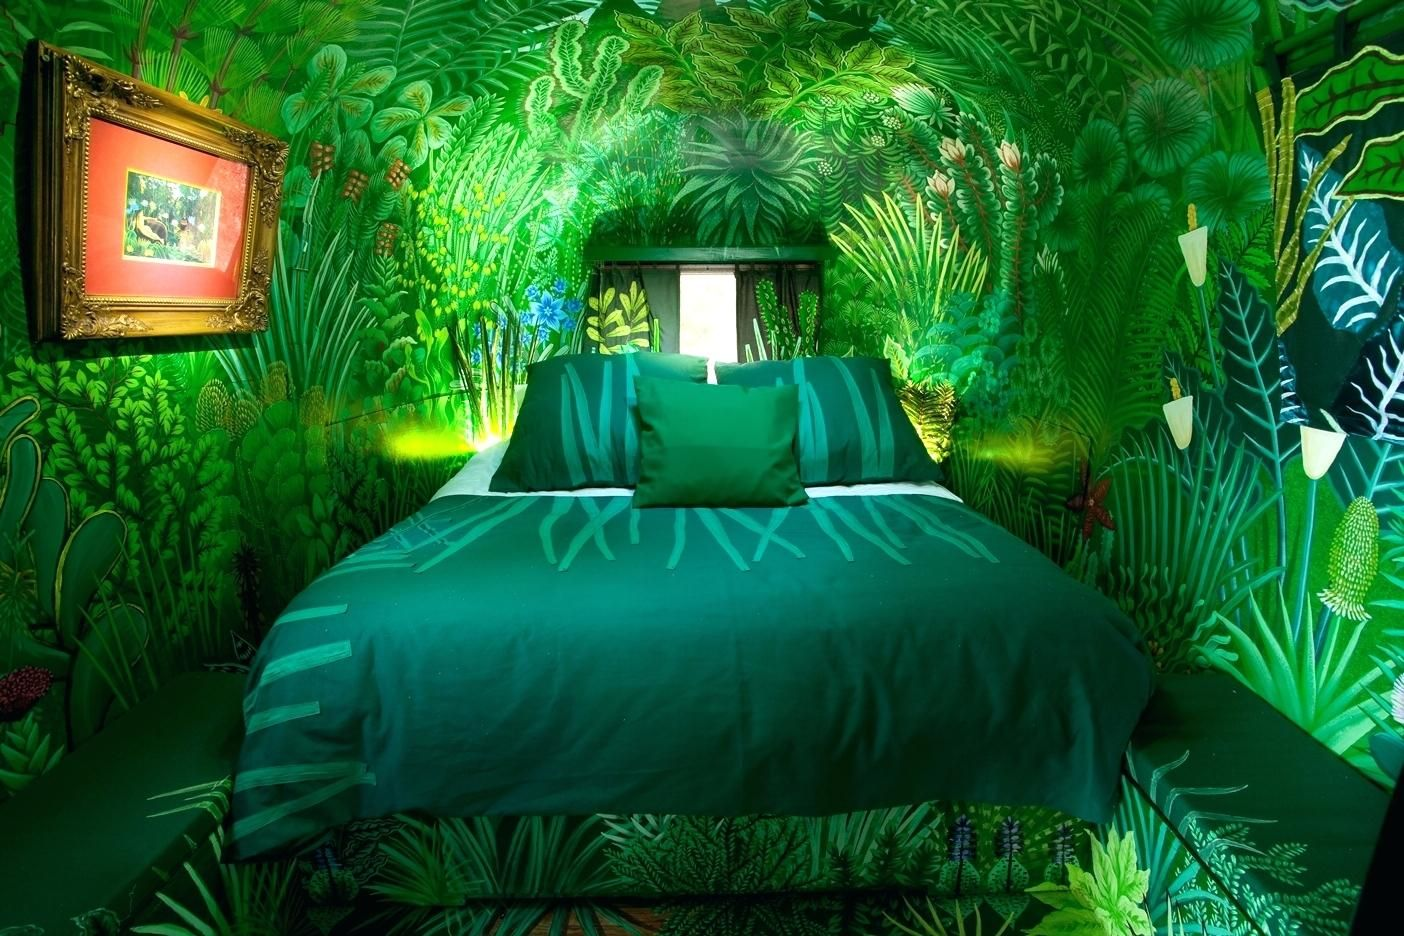 Forest Bedroom Wallpaper For Walls Jungle Themed Bedrooms Kids Old Mac Safari Decorating Ideas Living Room Wal Bedroom Themes Bedroom Green Green Bedroom Decor #safari #wall #decor #for #living #room